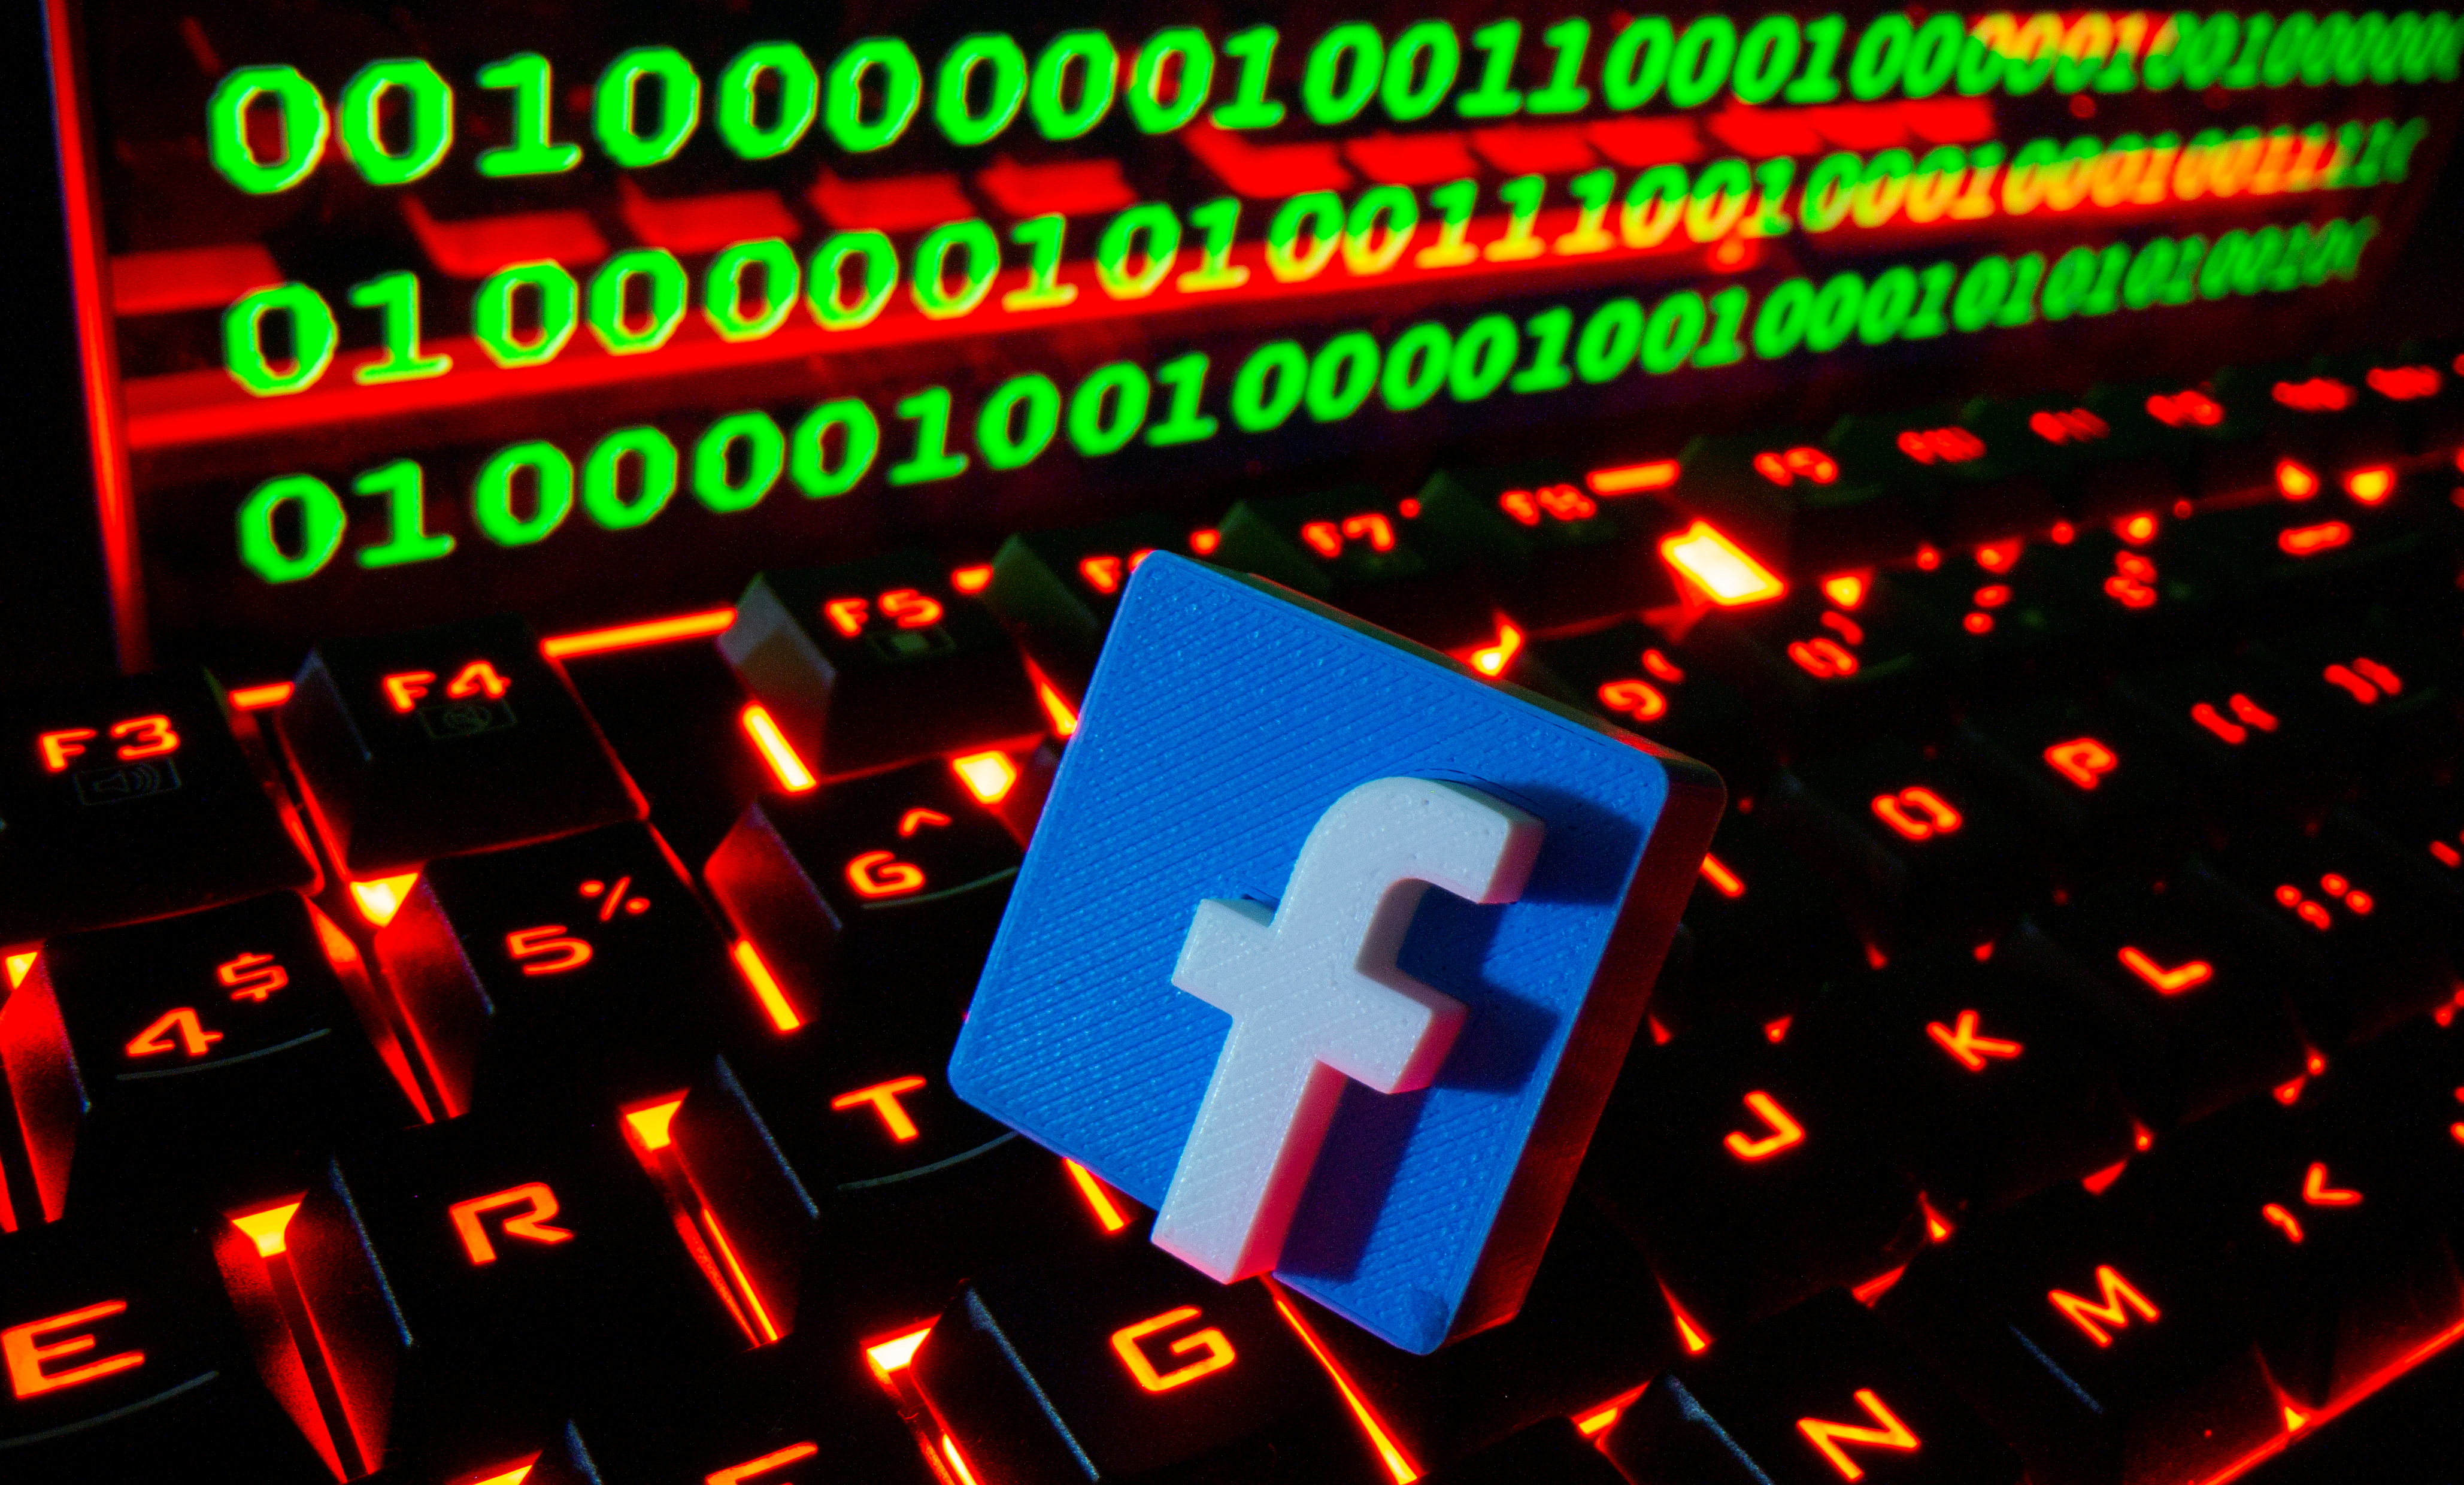 A 3D printed Facebook logo is pictured on a keyboard in front of binary code in this illustration taken September 24, 2021. REUTERS/Dado Ruvic/Illustration